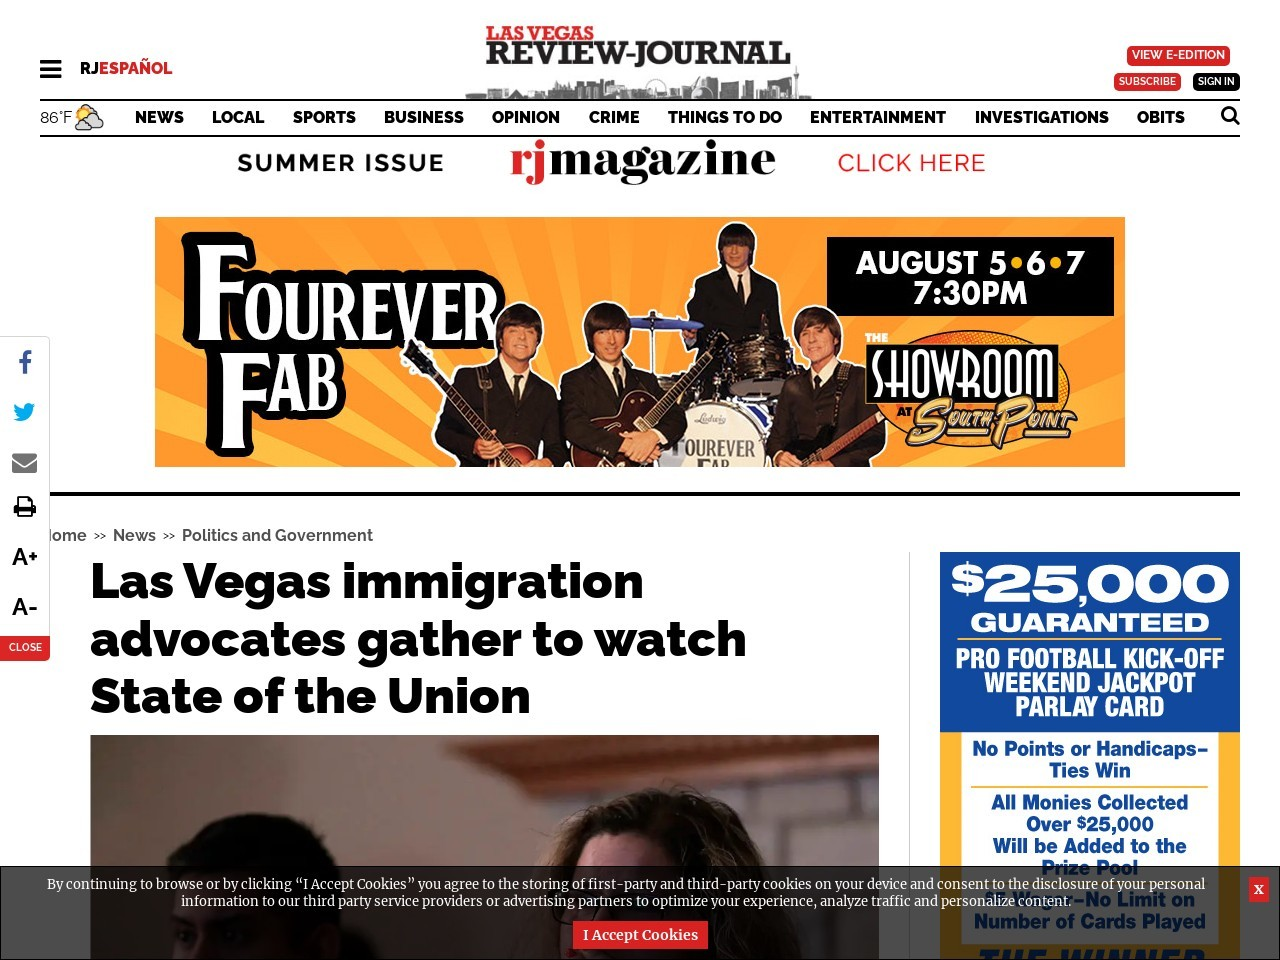 Las Vegas immigration advocates gather to watch State of the Union